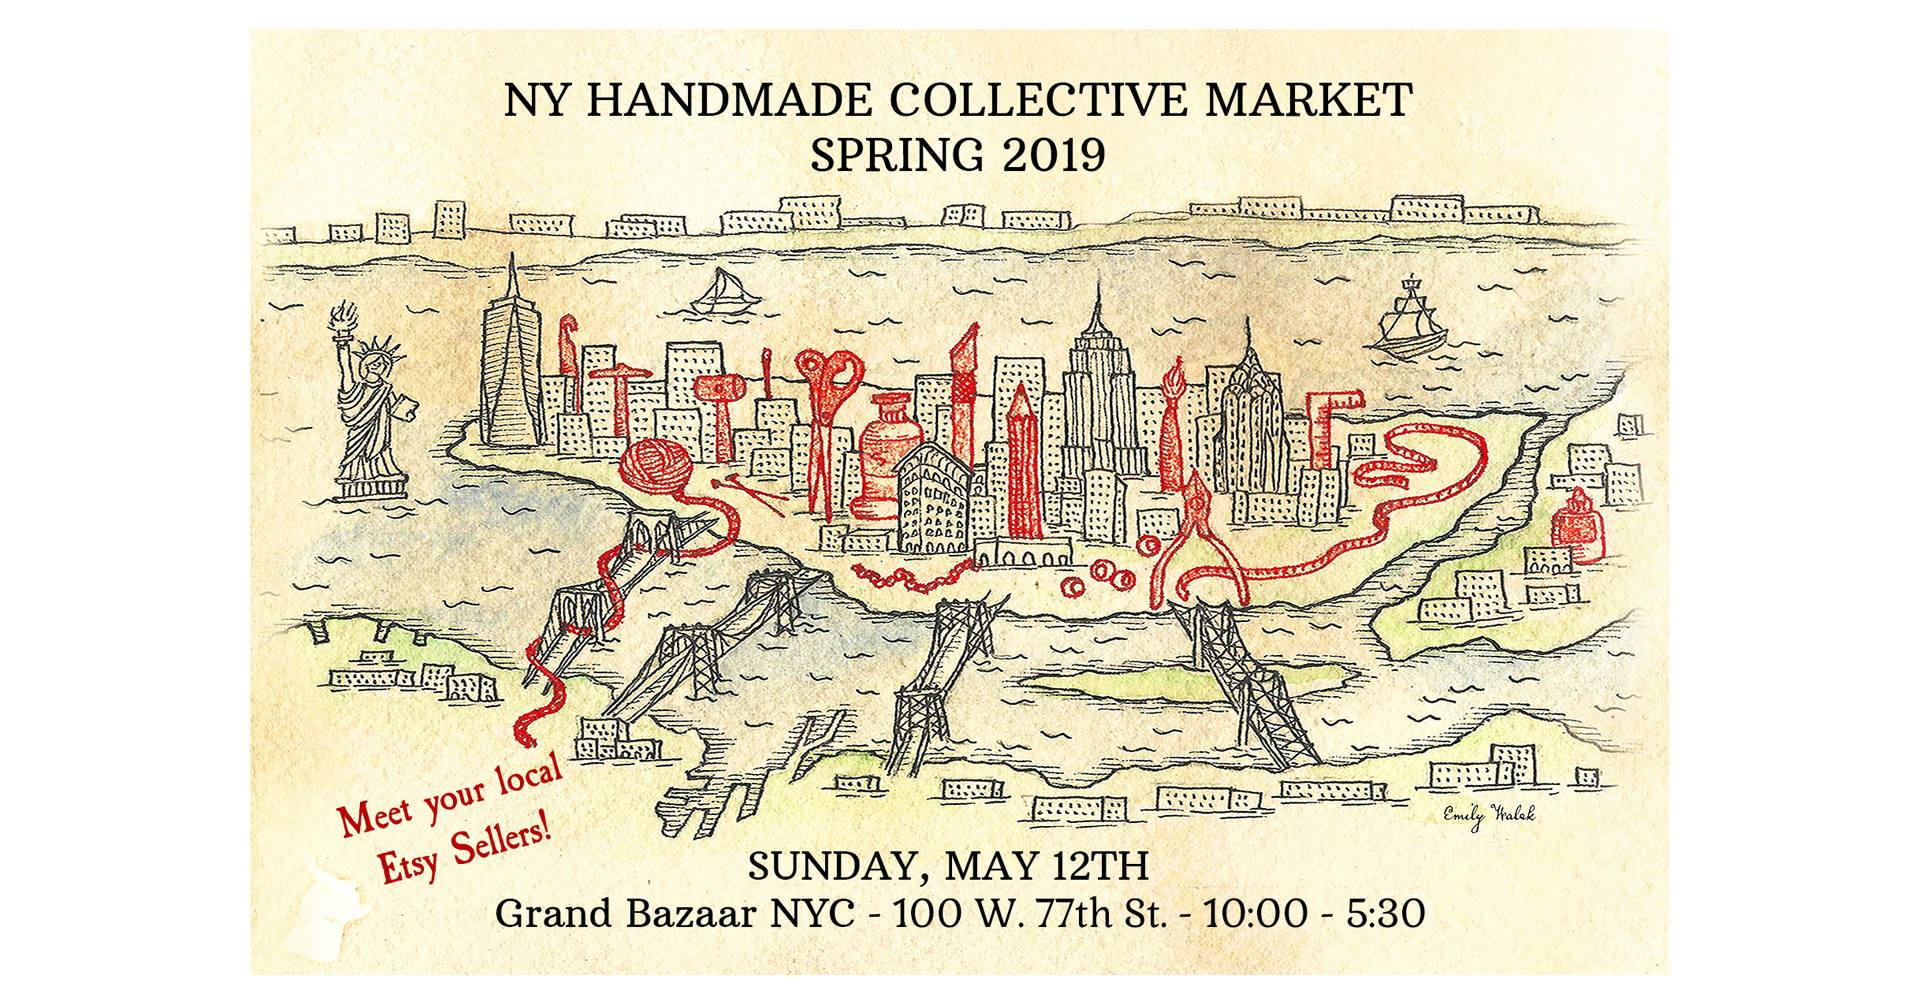 NY Handmade Collective Market Spring 2019 - This spring, the NY Handmade Collective is excited to present the first edition of our new and improved twice-yearly partnership with Grand Bazaar NYC. More than 40 of our maker members will be there to offer you the chance to shop directly from their latest and greatest creations, many of which get scooped up before they ever make it to our Etsy stores.Sunday May 12th, 10am-5:30pmGrand Bazaar NYC, 100 W 77th St, New York, New York 10024